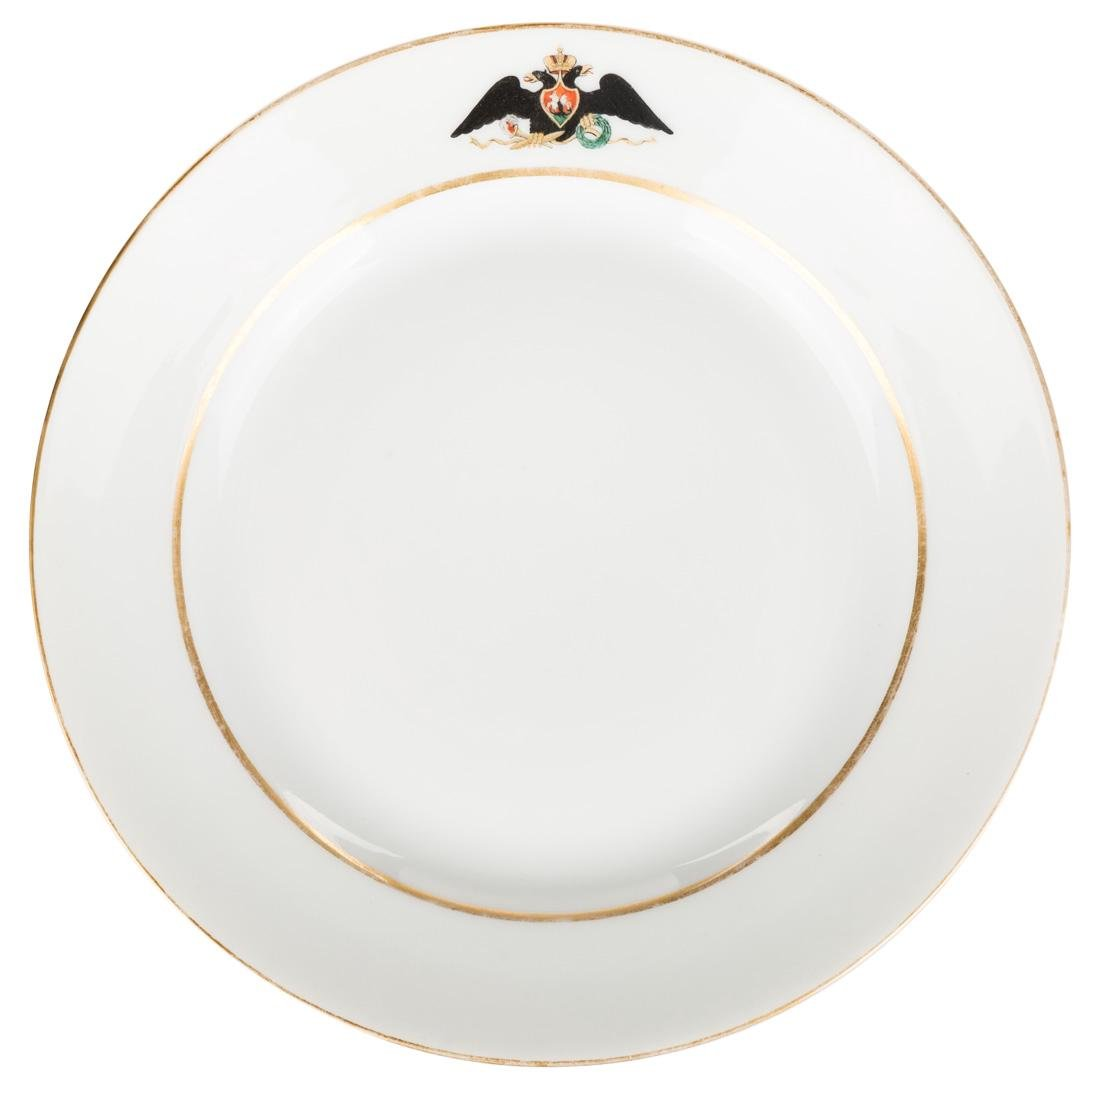 A PAIR OF RUSSIAN IMPERIAL PORCELAIN PLATES FROM THE - 2